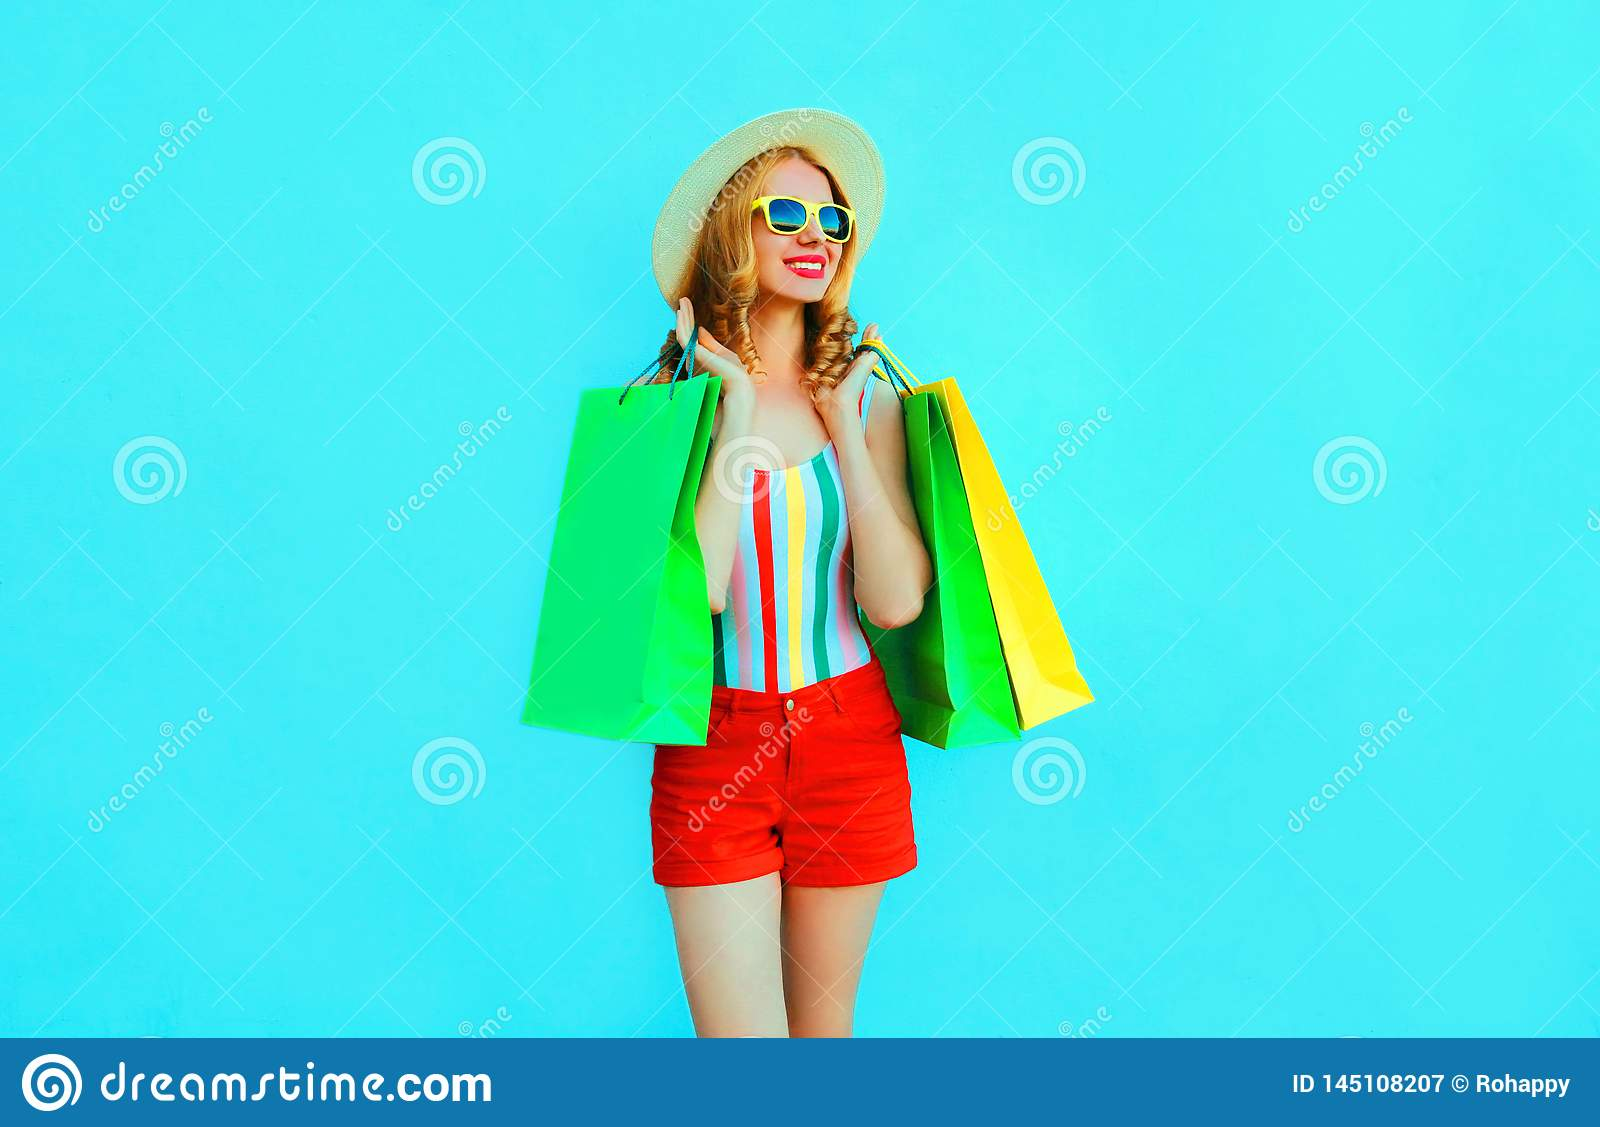 Portrait happy young smiling woman with shopping bags in colorful t-shirt, summer round hat, red shorts on blue wall